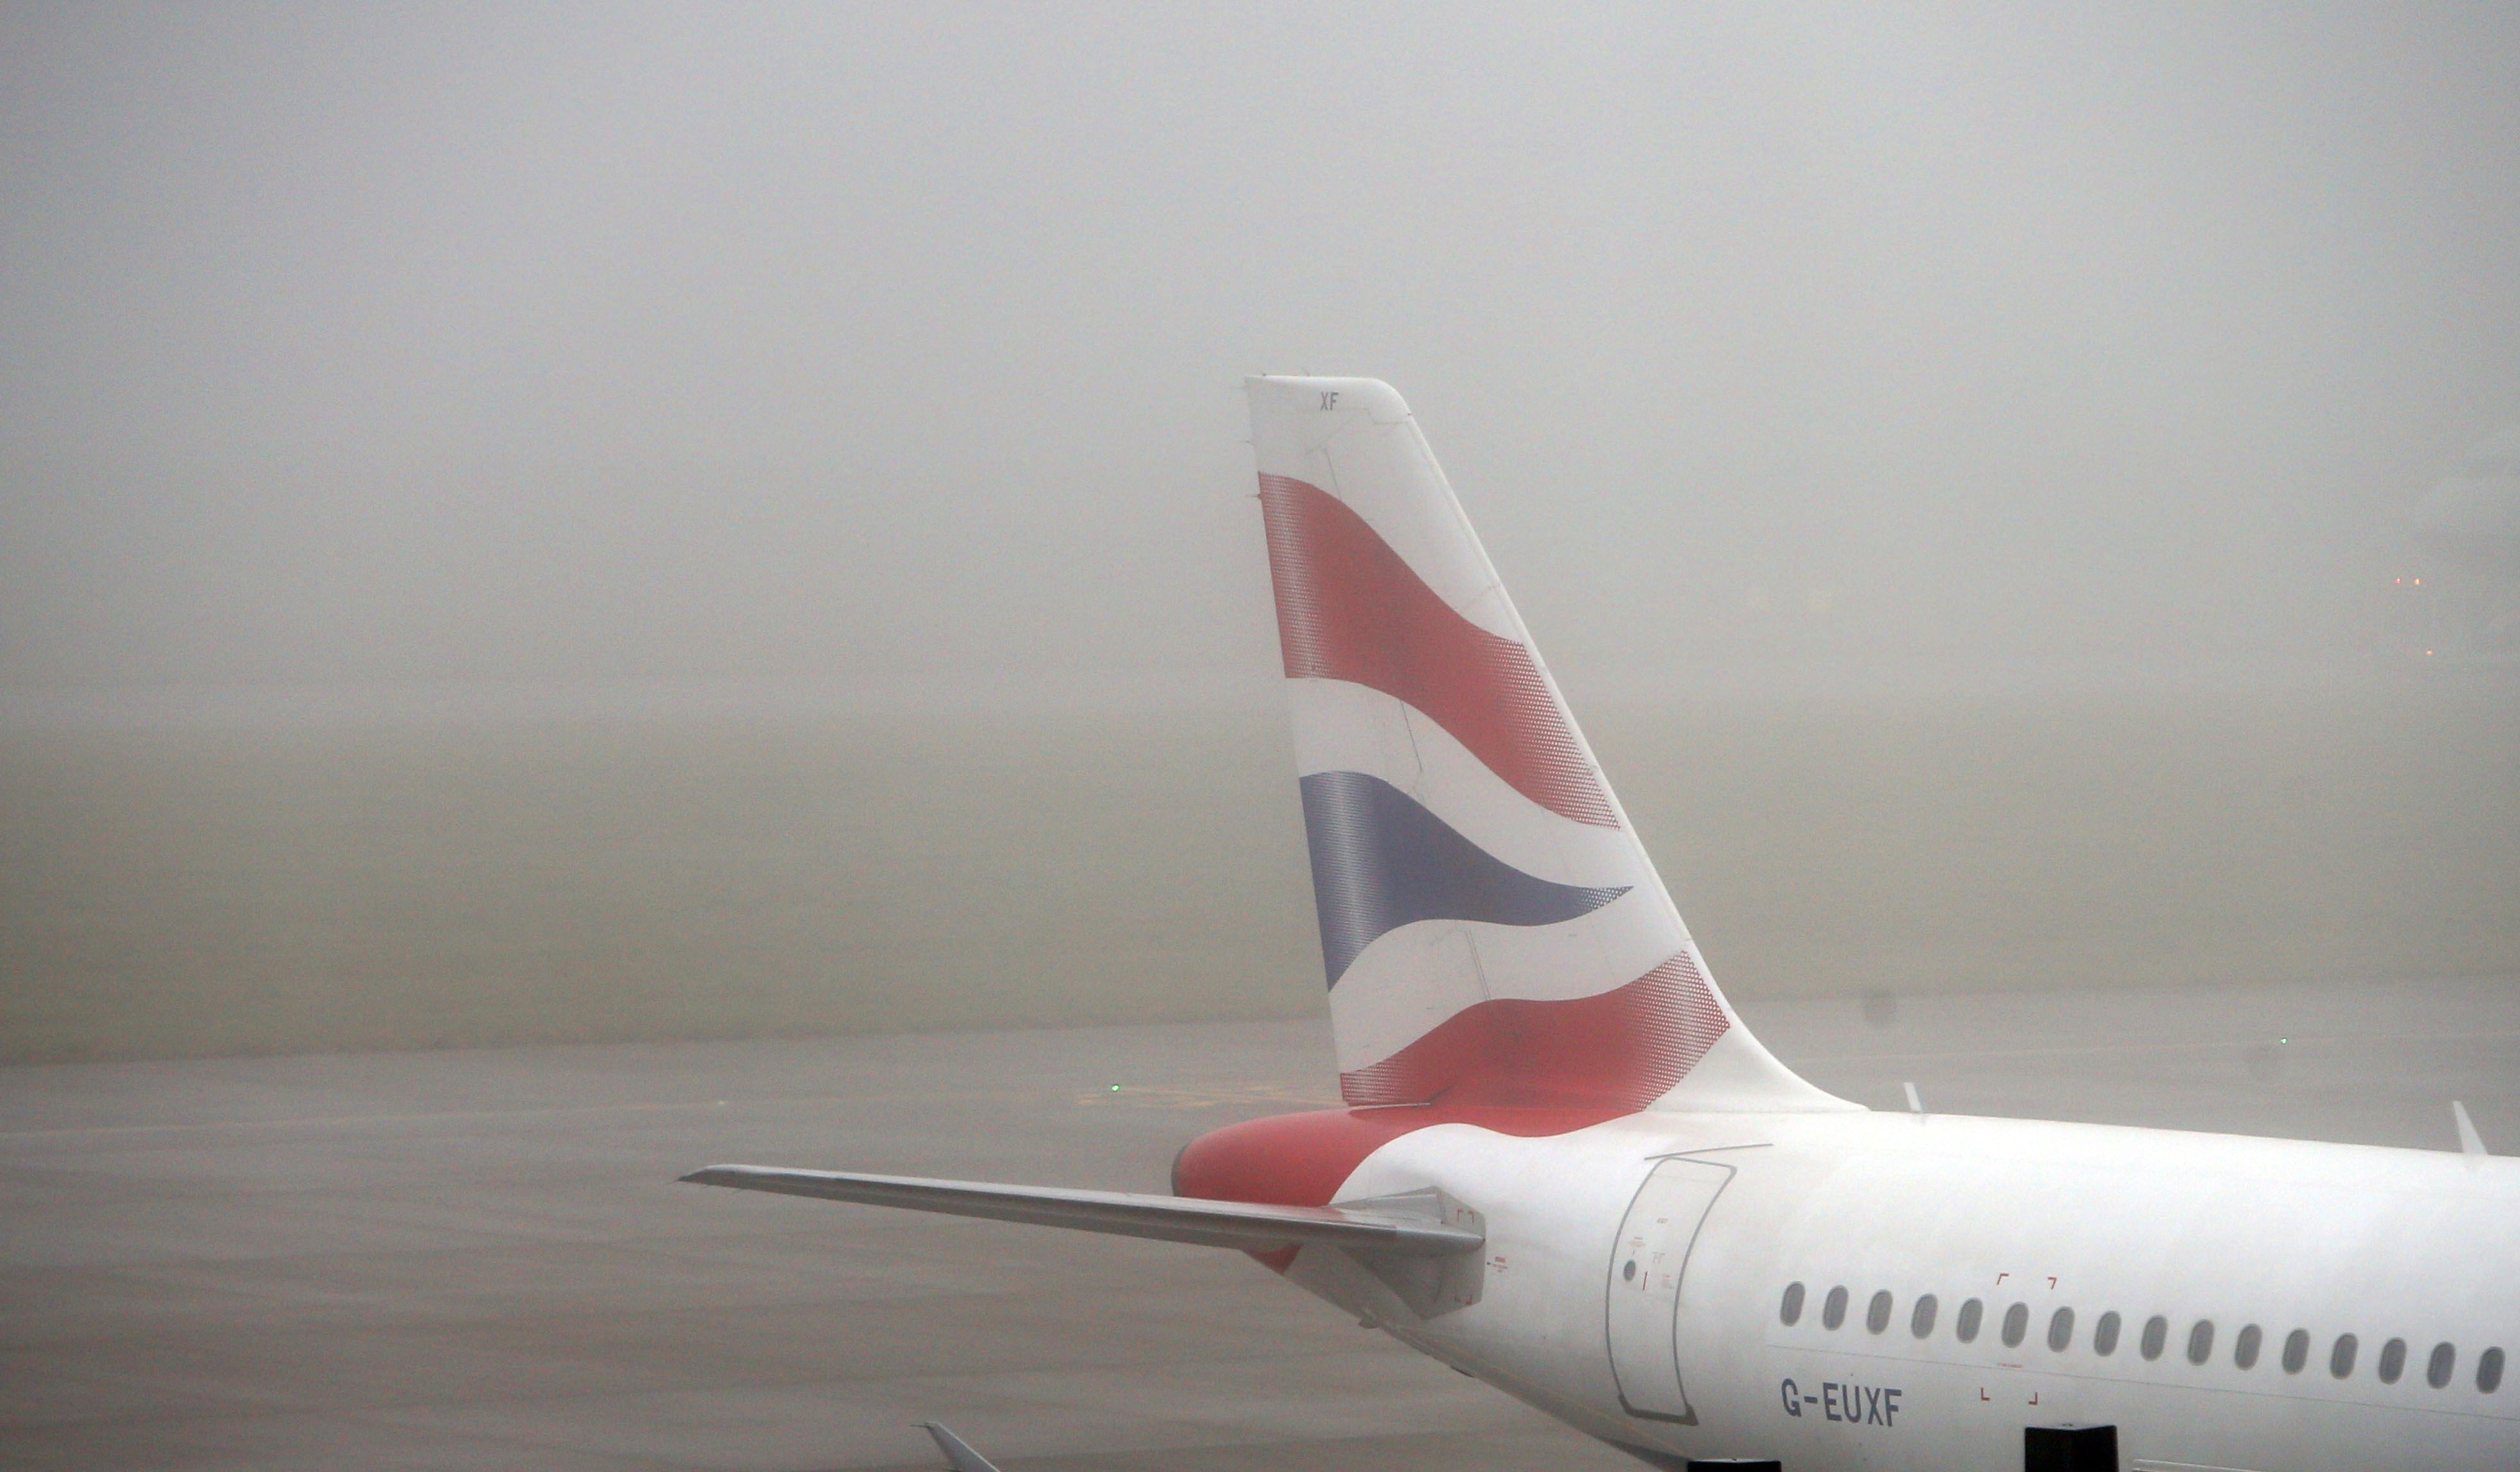 A British Airways plane in the fog at  Terminal 5 of Heathrow Airport, as thick fog disrupts flights at UK airports for a second day.